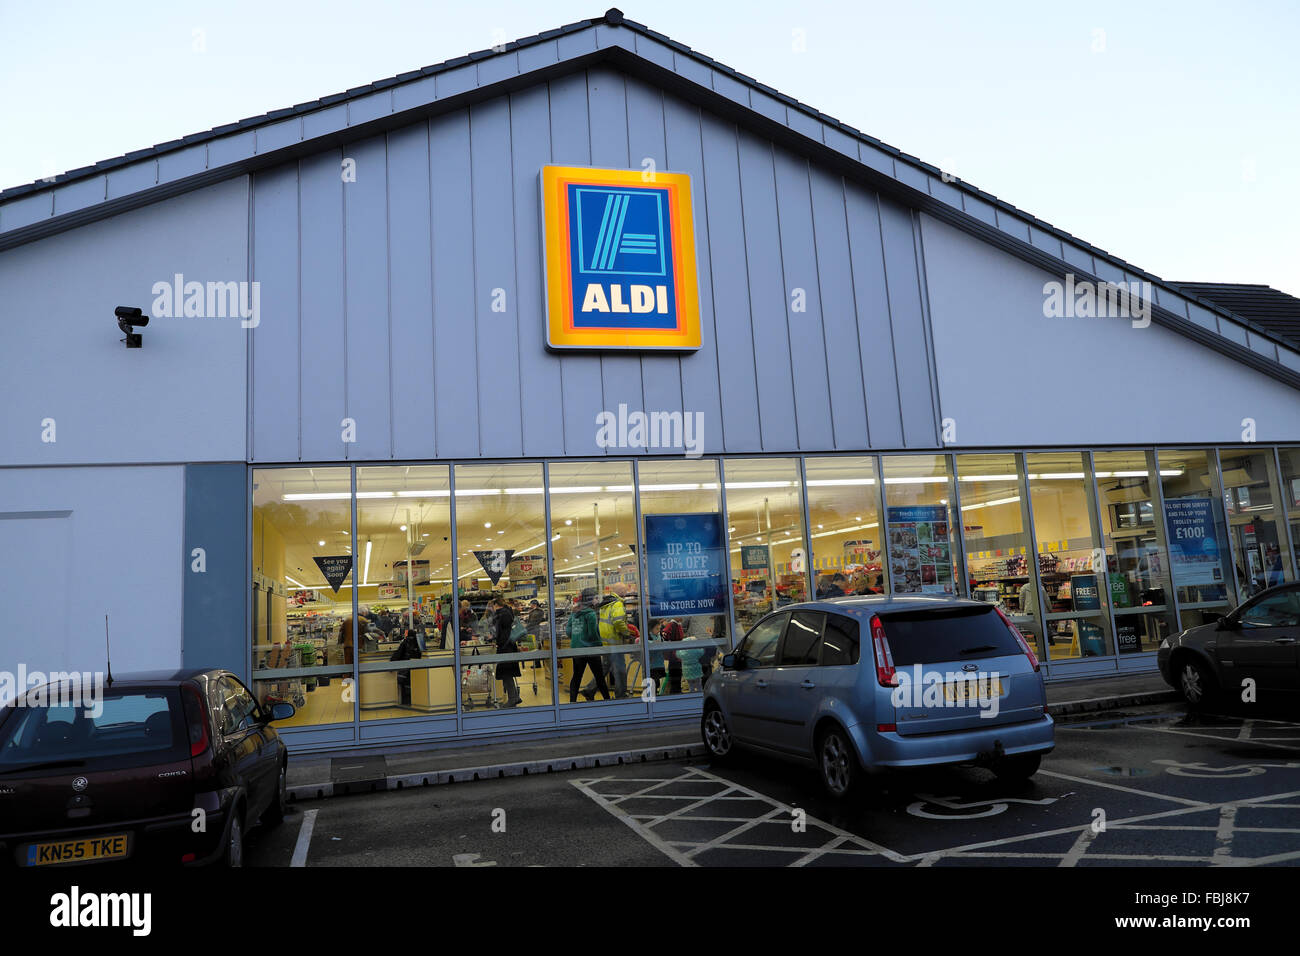 Exterior evening view looking through windows at customers in Aldi Supermarket sign and logo Wales UK   KATHY DEWITT - Stock Image